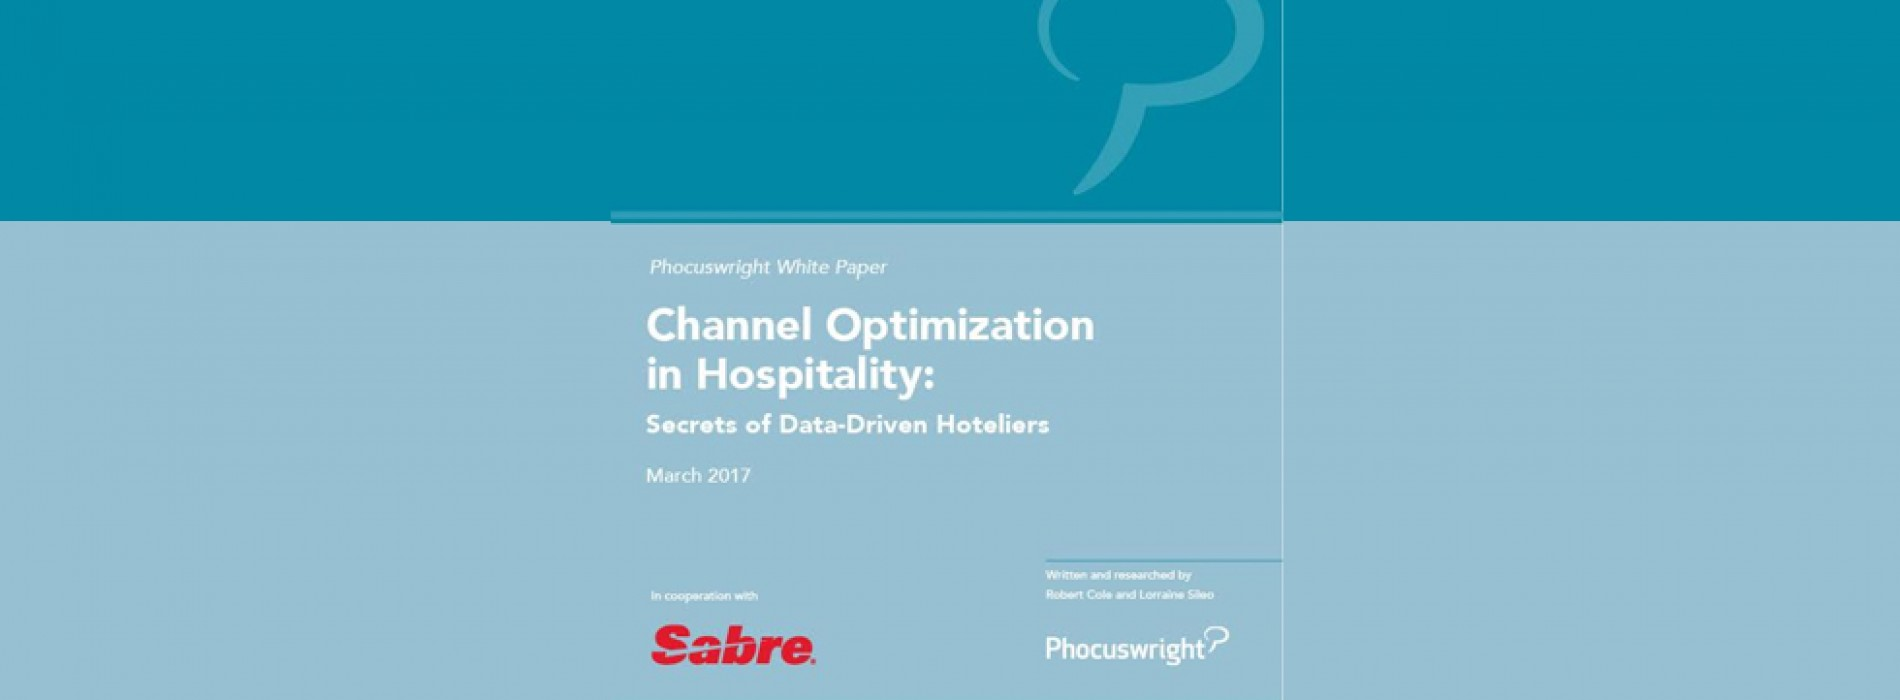 Channel Optimization: The Secrets of Data-Driven Hoteliers